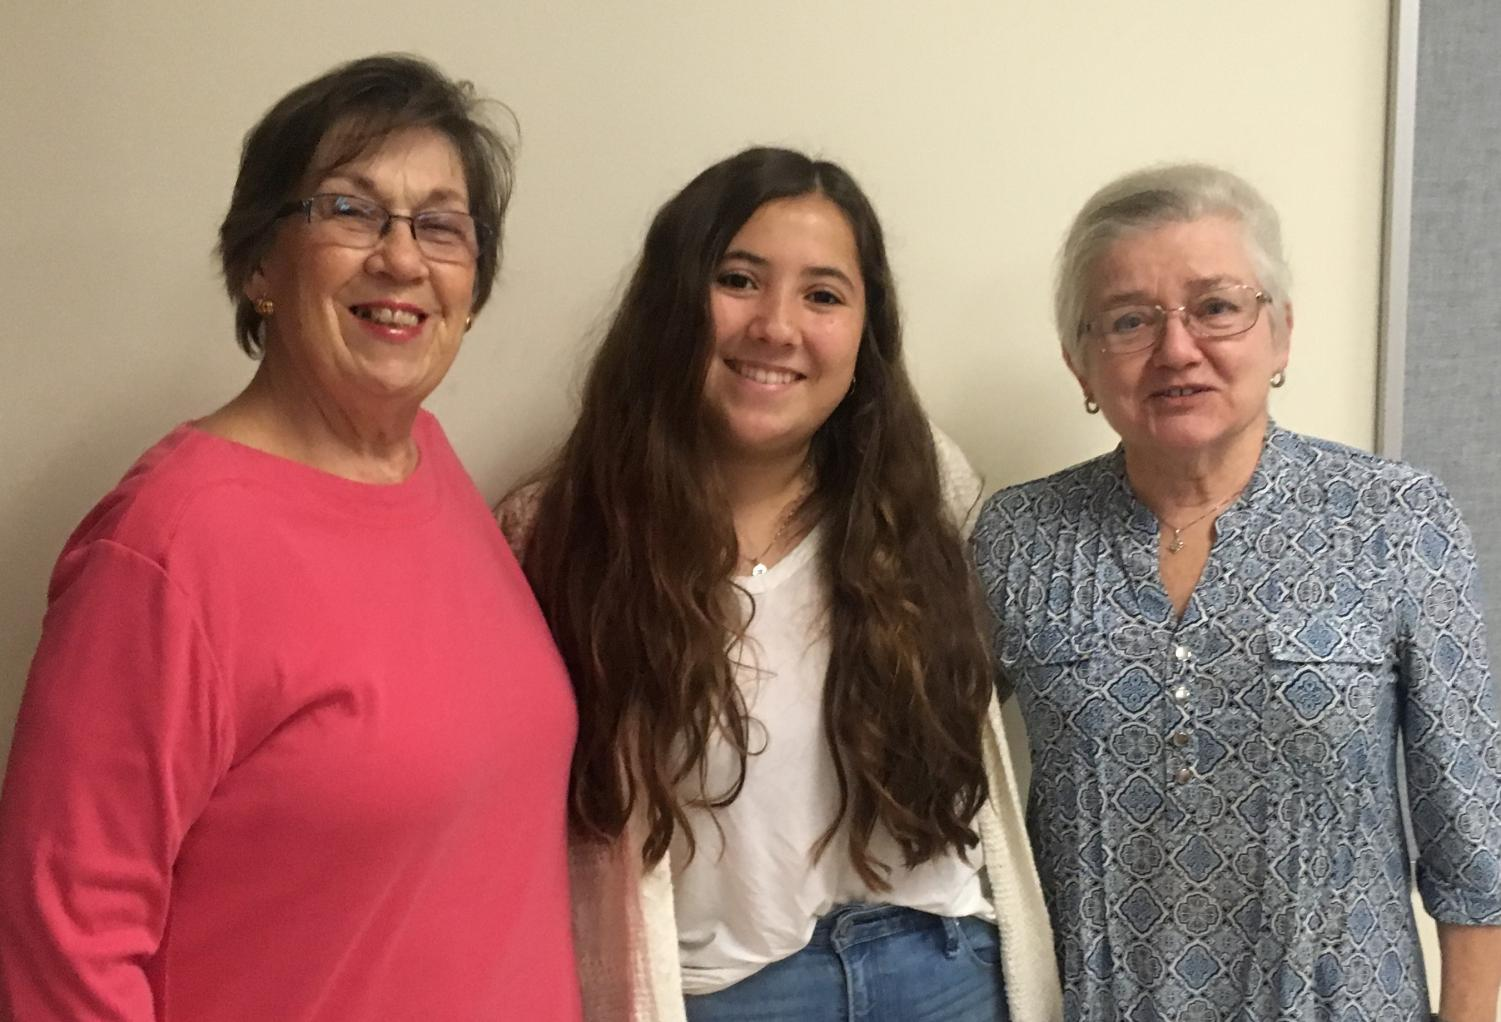 GHS student Olivia Hogan-Lopez (center) met today at GHS with Marge Schernig and June Michaels, members of the League of Women Voters of Cape Ann.